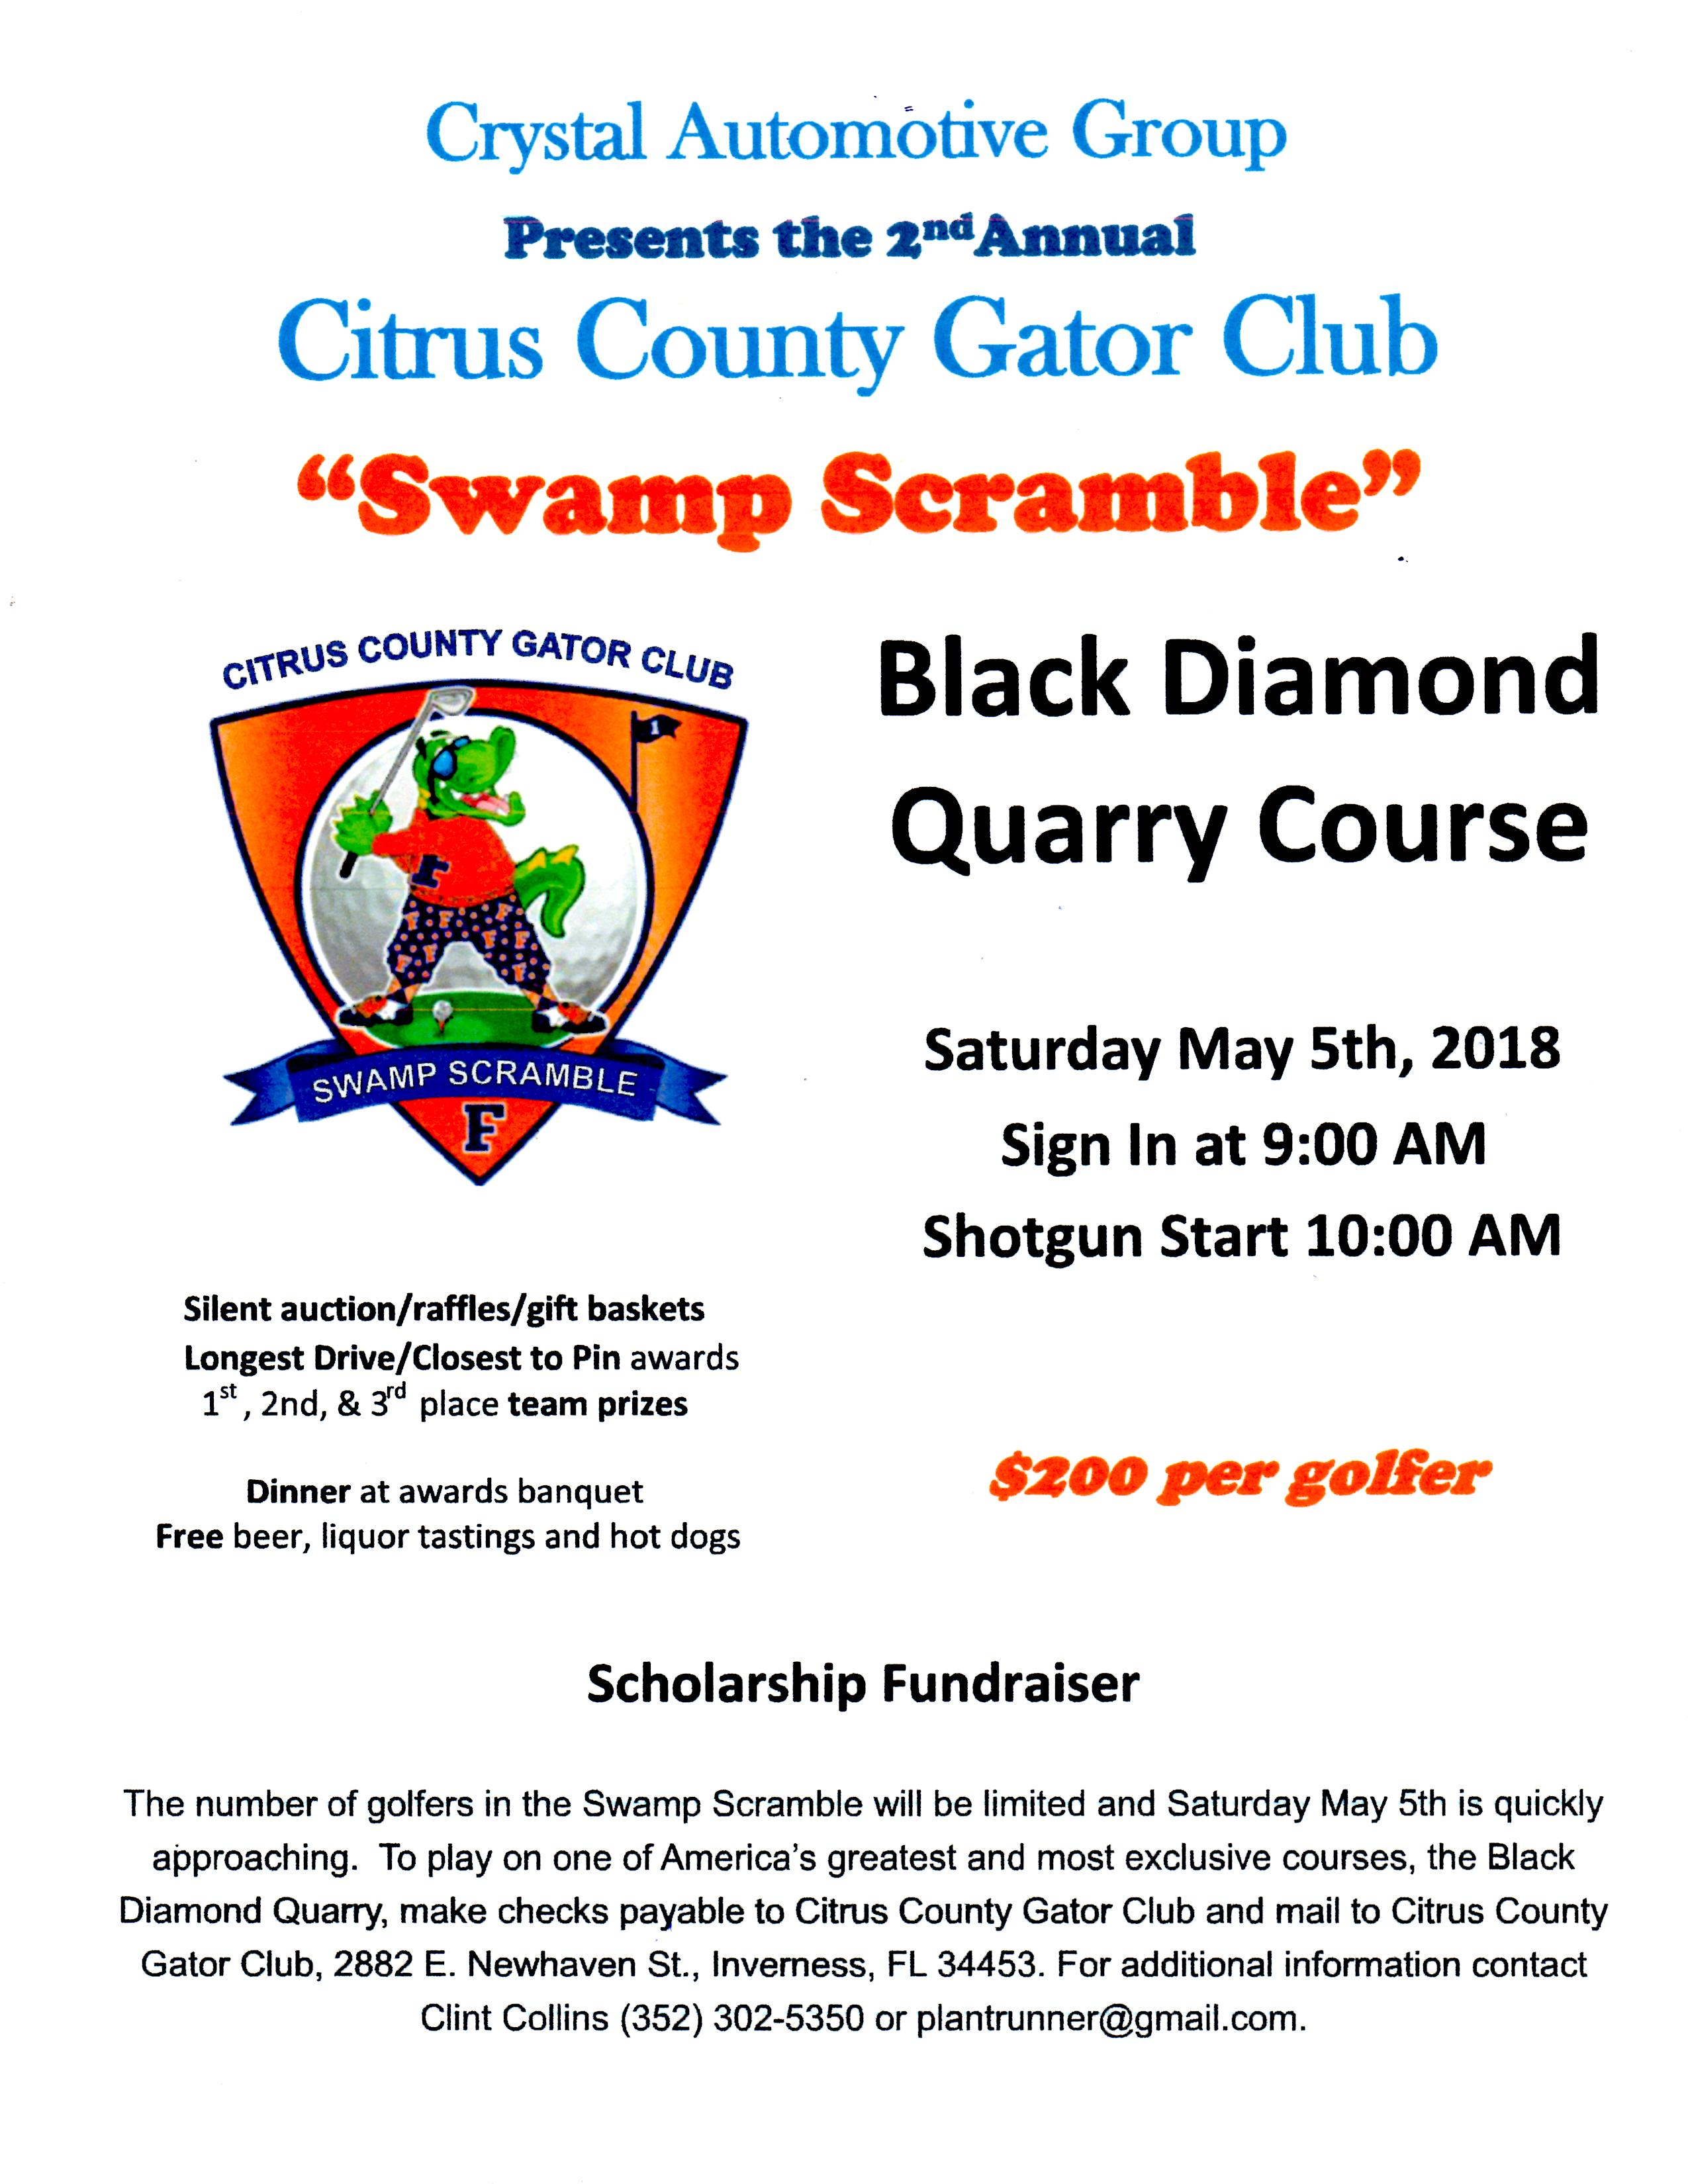 2018 Swamp Scramble Flyer